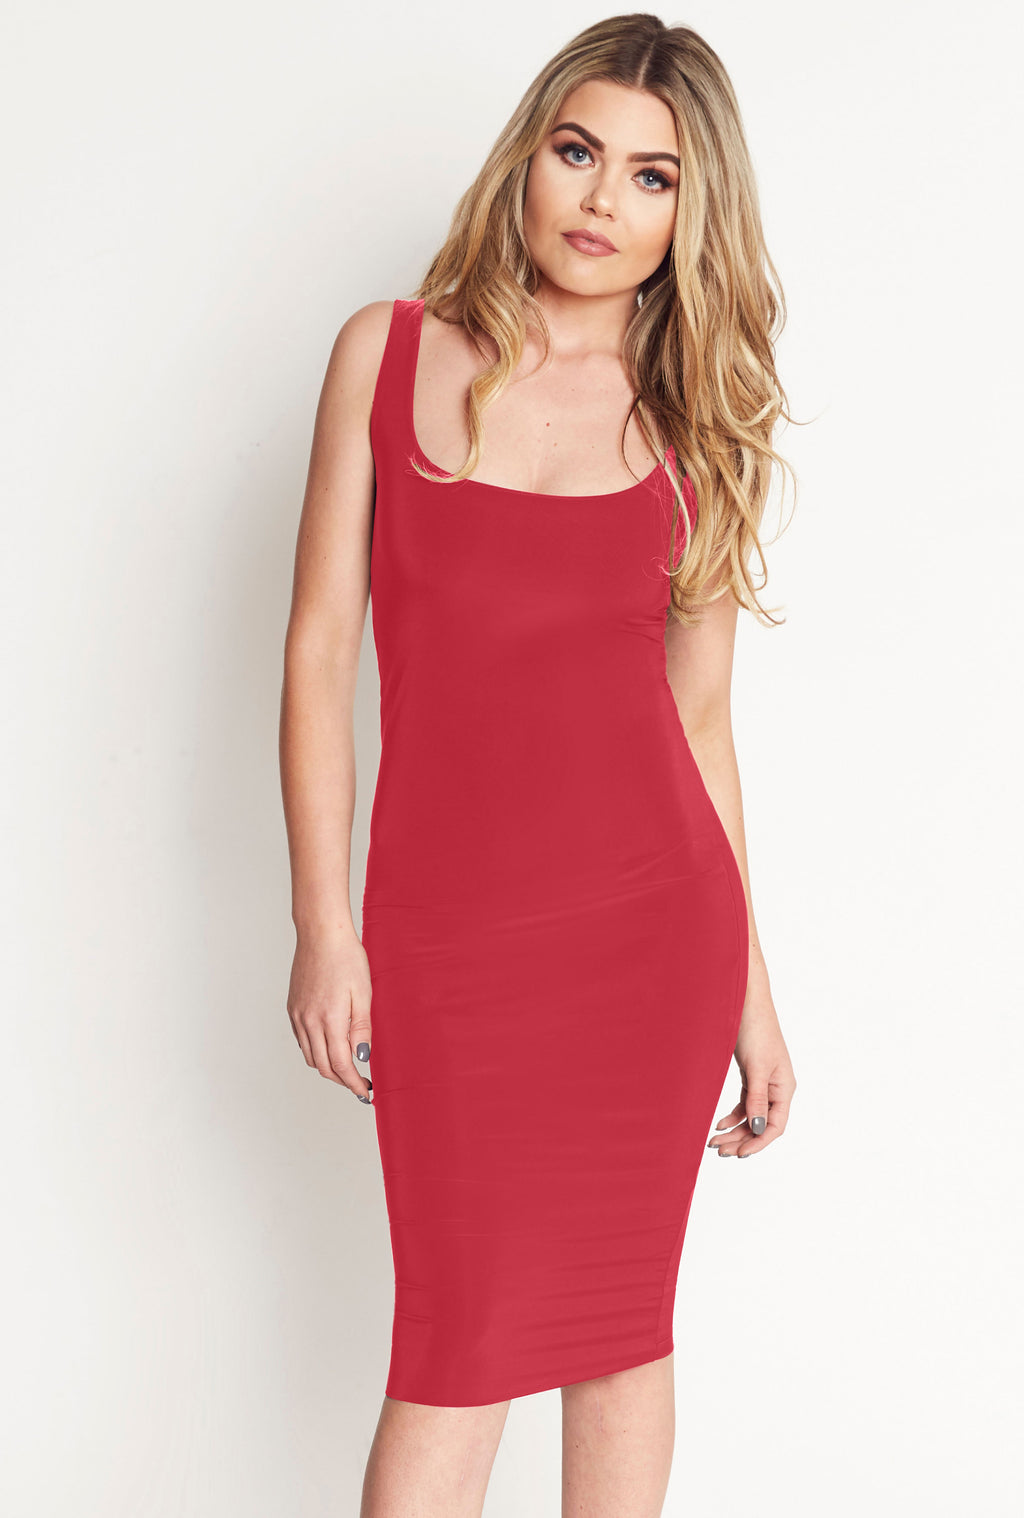 Harper Scoop Neck Bodycon Midi Dress in Red